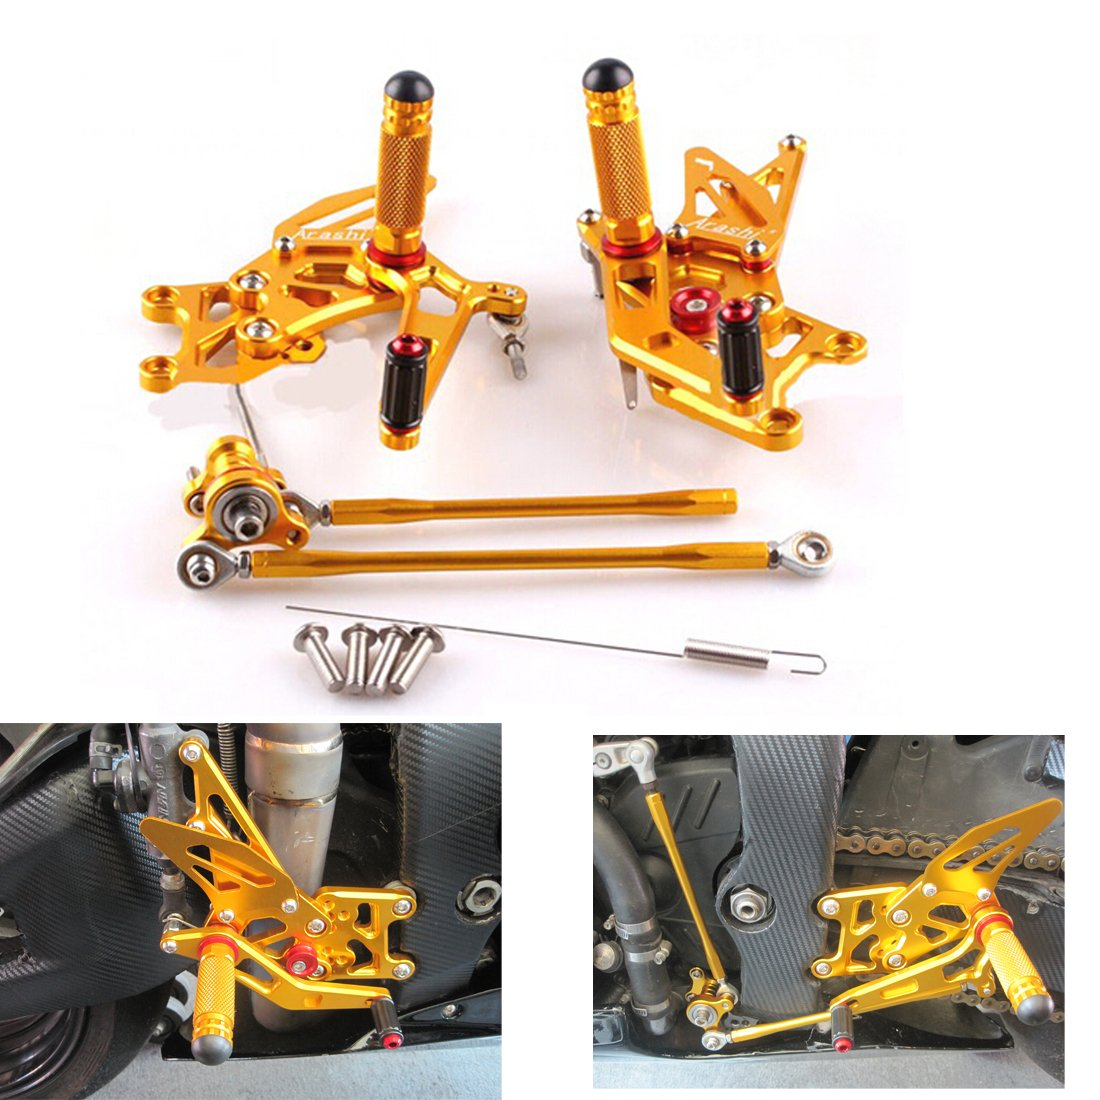 2007-2012 Honda CBR 600RR Adjustable Rearsets Gold CNC For Honda CBR 600RR Foot Pegs Rear Sets 07-12 Issyzone